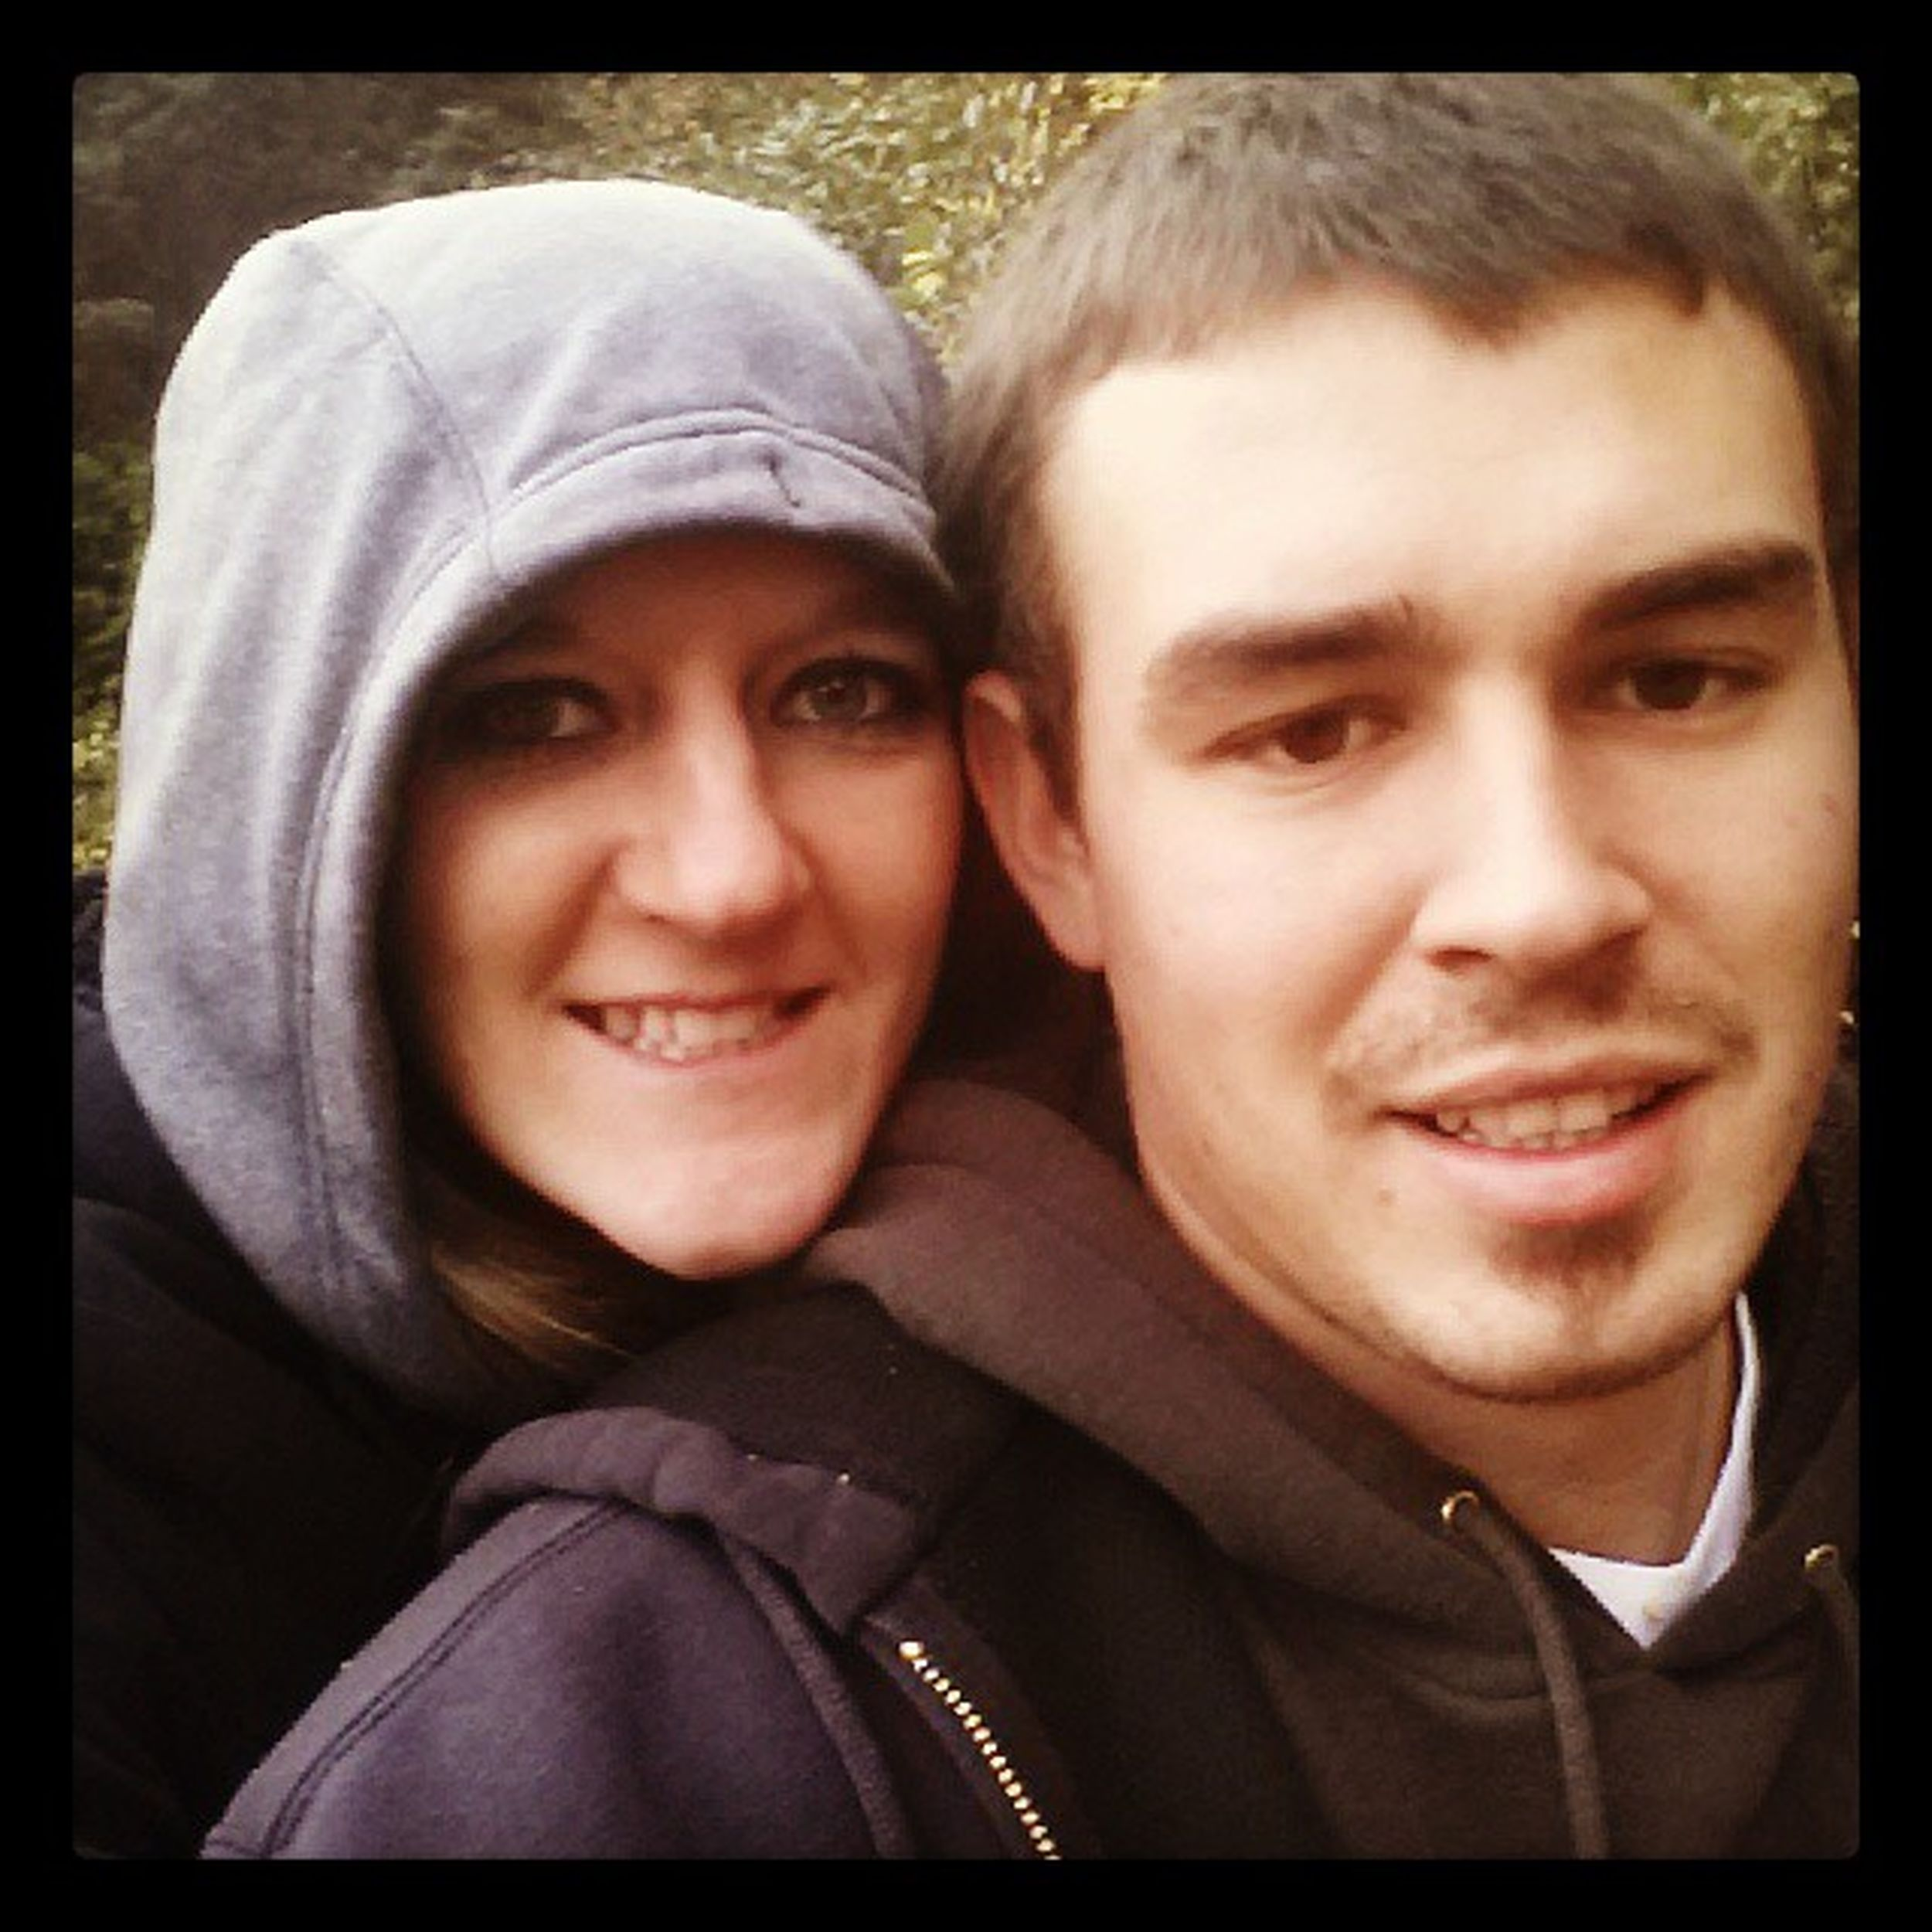 Me and my babe Fourwheelin Mountains Beautiful Heknows goodspots overlookingwater peaceful lovelife